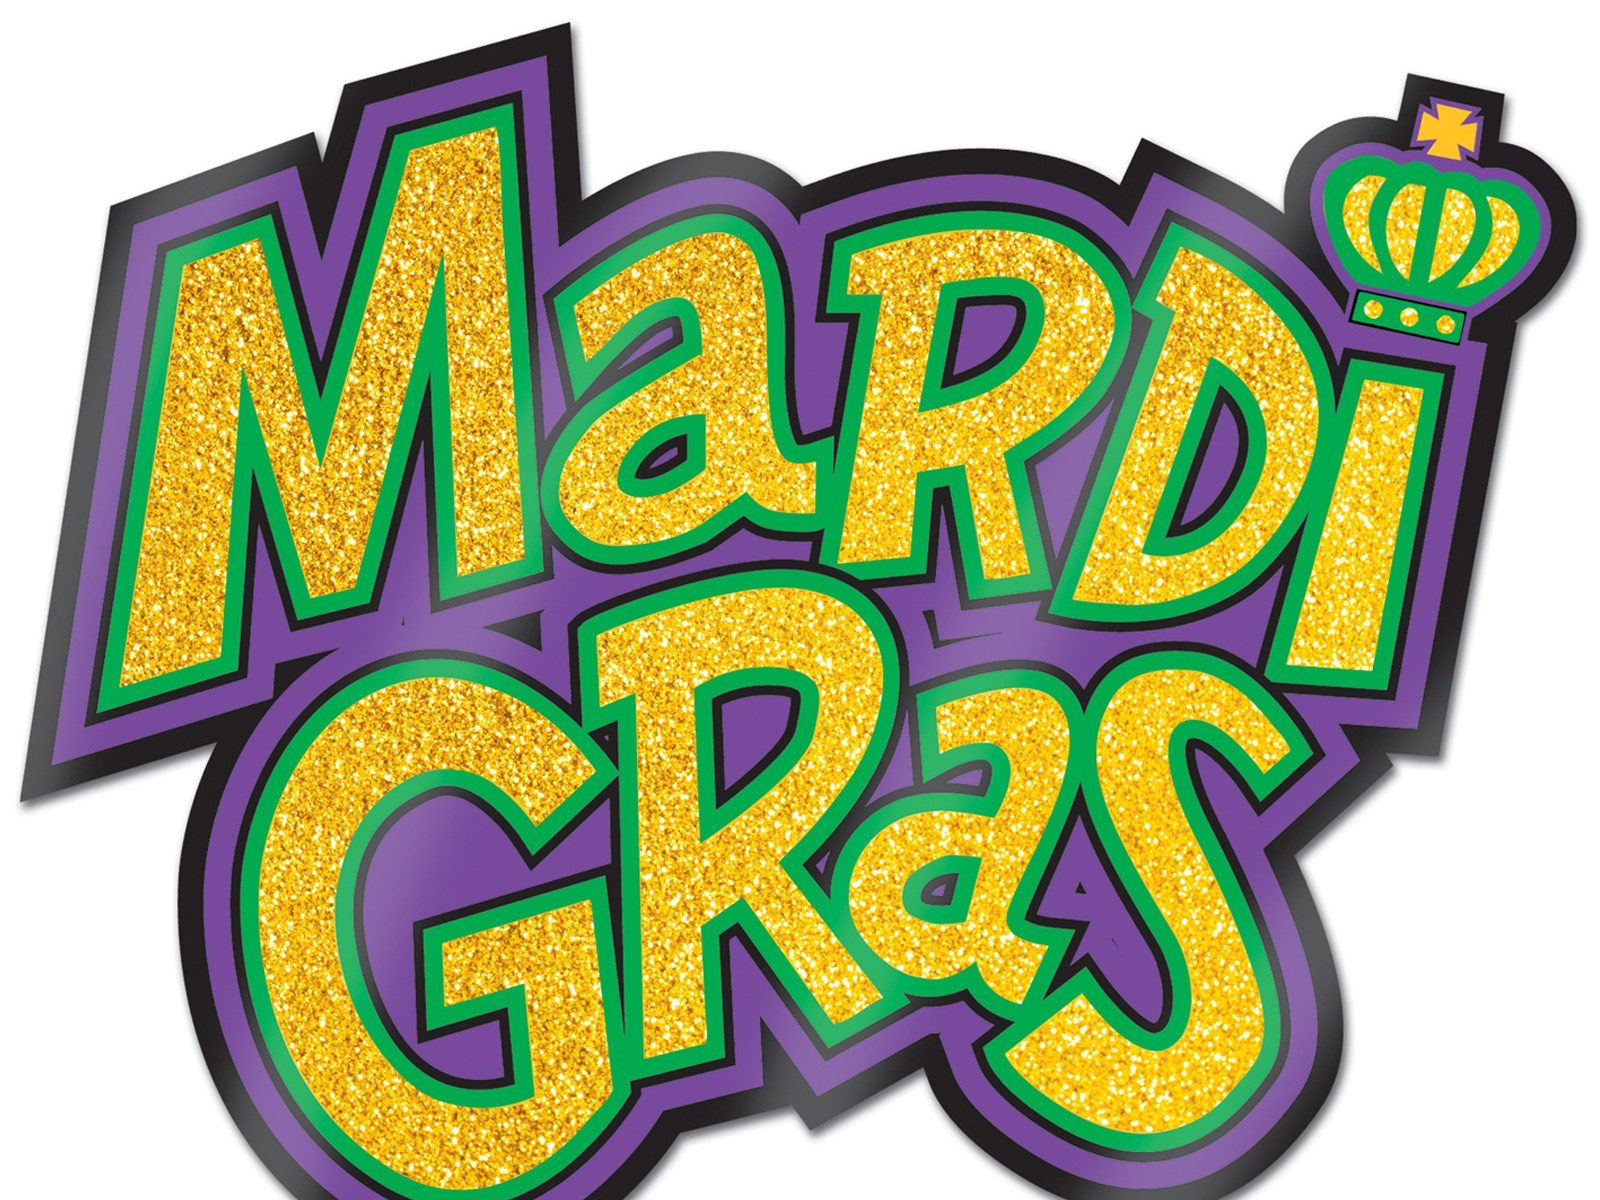 Number of Parades. During the day period leading up to Mardi Gras, nearly 70 parades roll in the area. An float procession of a member krewe can feature more than 75 units.